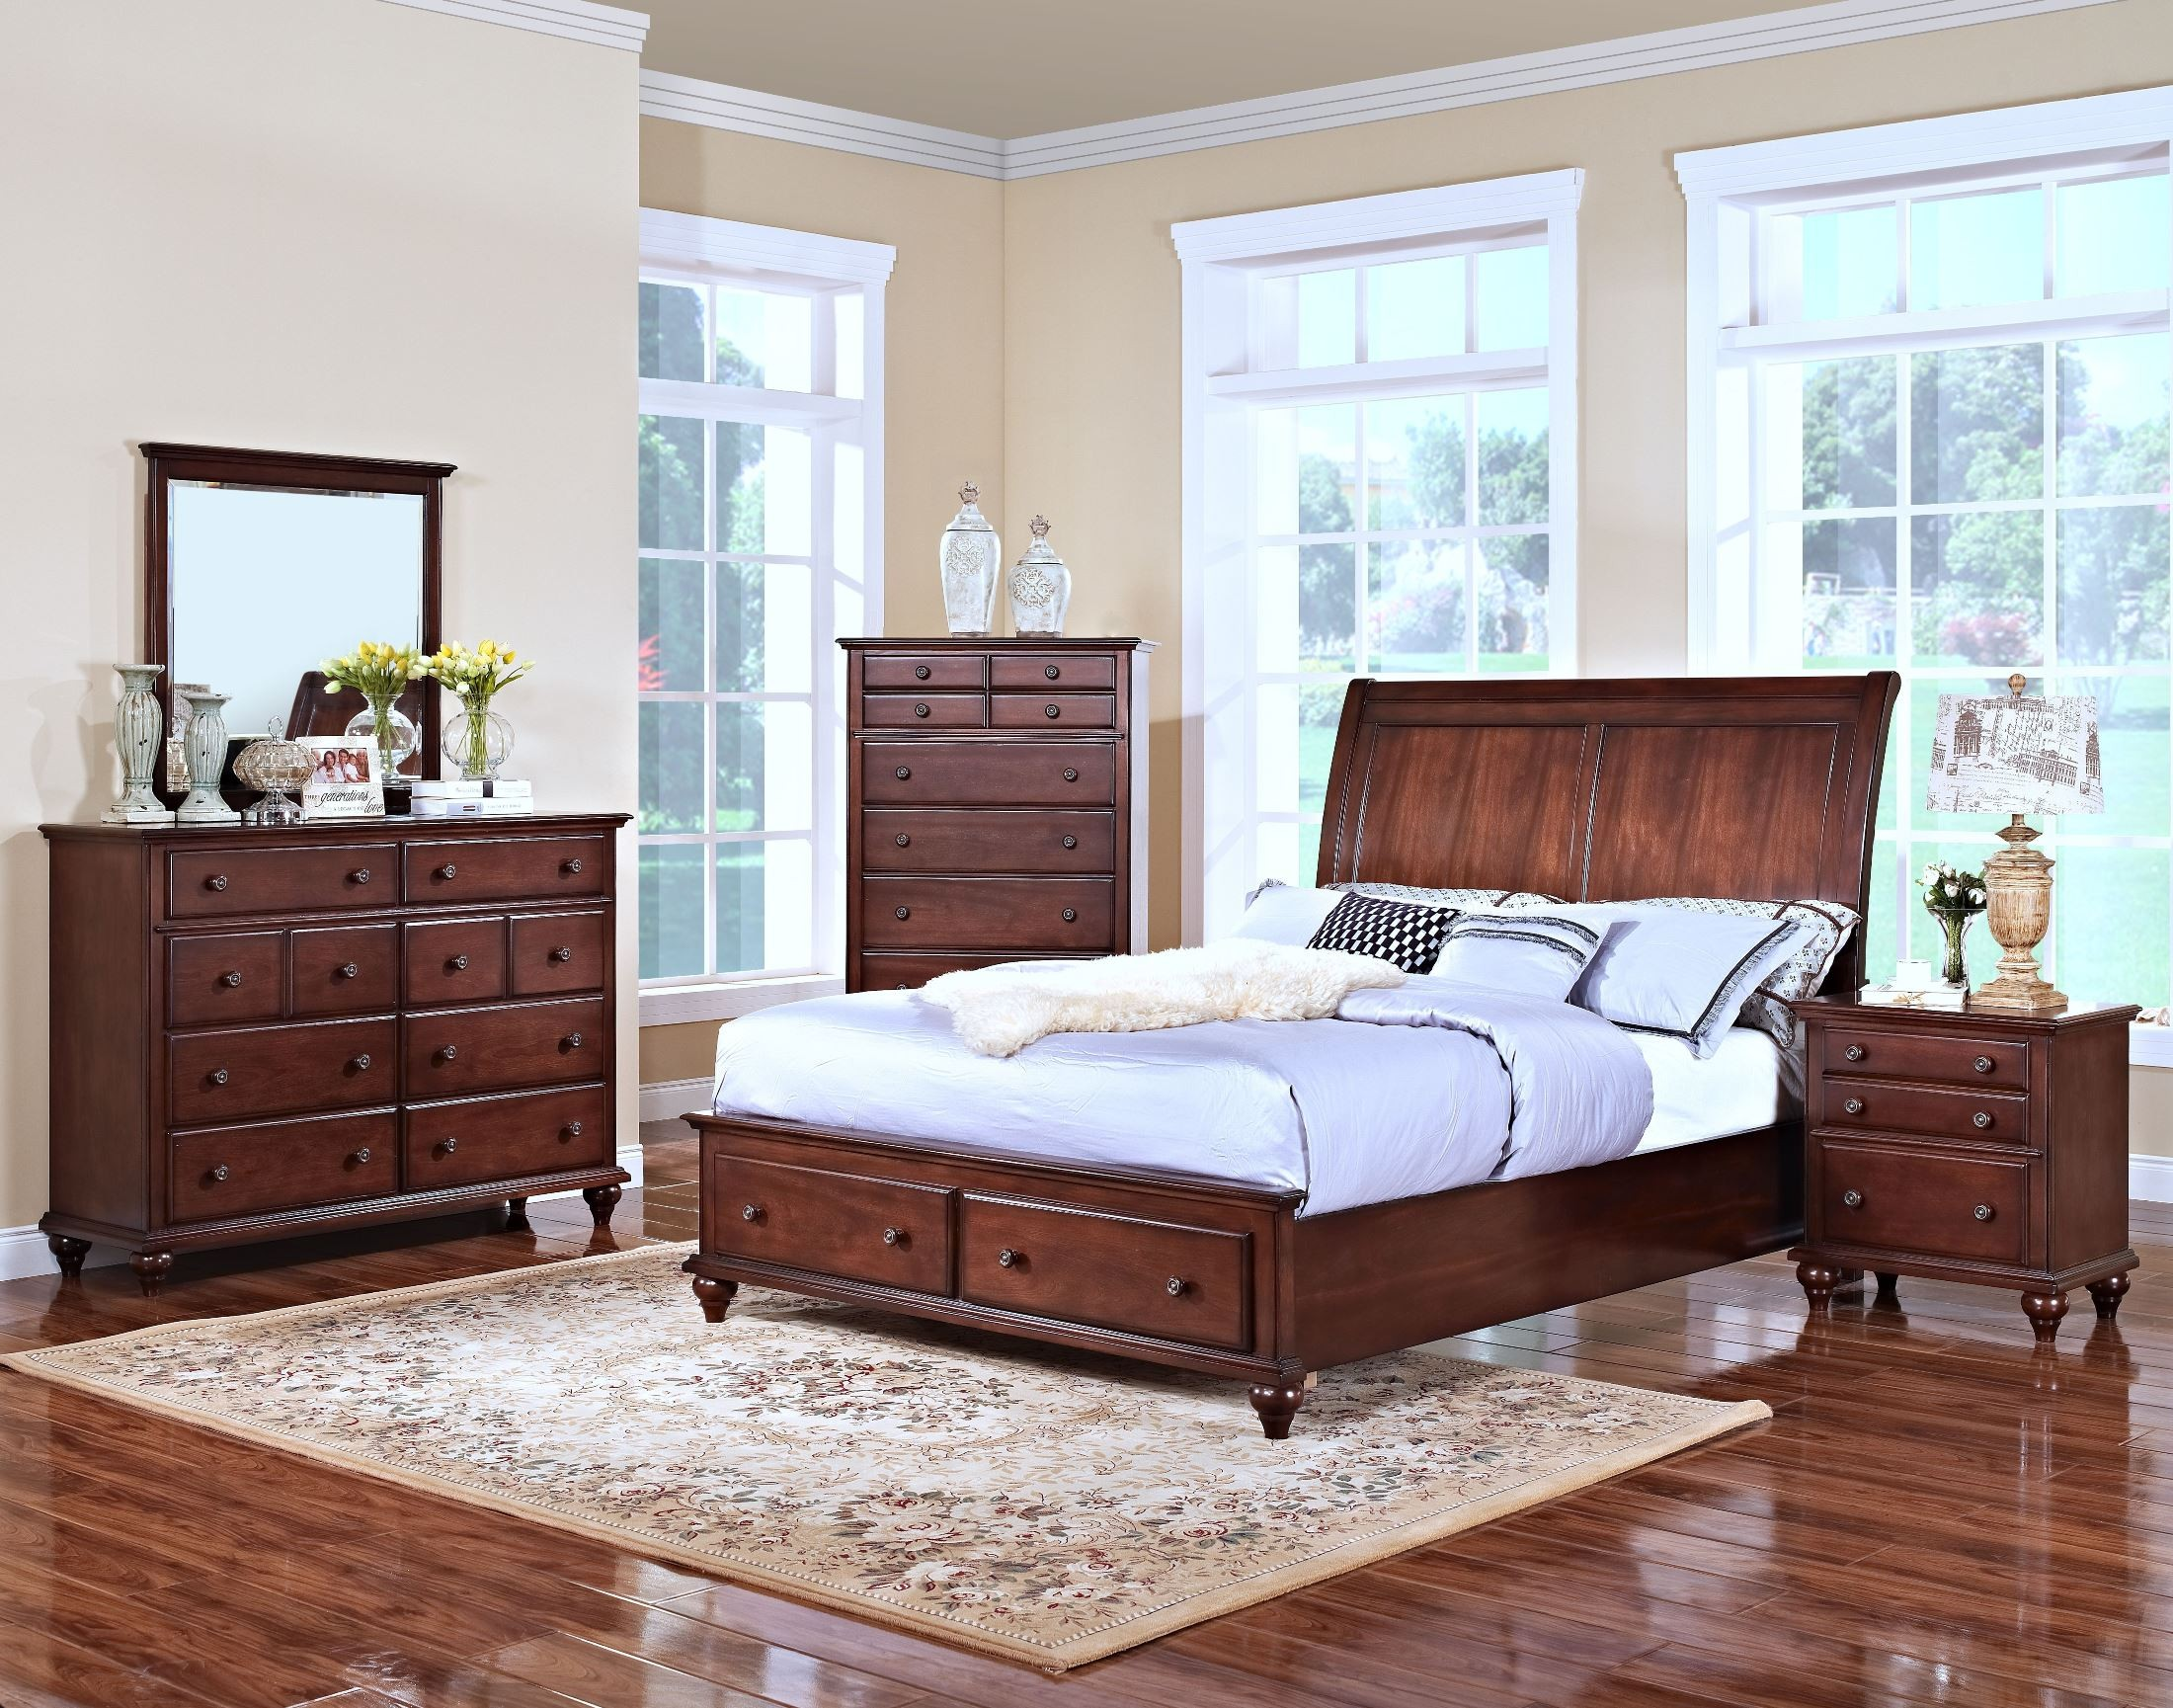 Spring Creek Tobacco Full Sleigh Storage Bed From New Classics 05 146 410 428 430 Coleman